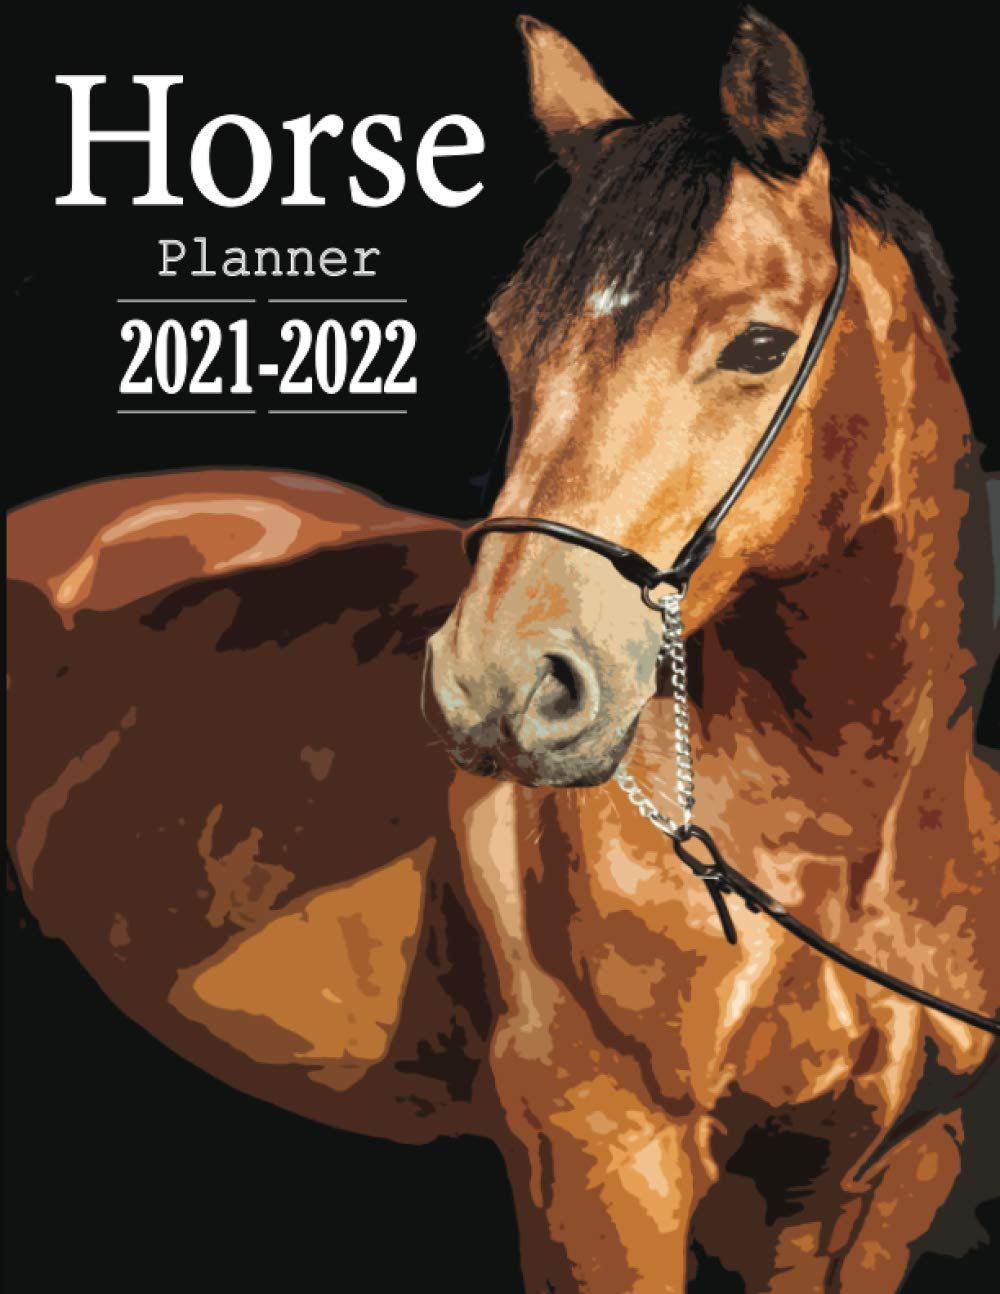 Horse Calendar 2022.Horse Planner 2021 2022 Daily Weekly Monthly Two Years Calendar 2020 2021 Goal Tracker Large Block Style Calendar Horses Lover Big For Men Women Kids Girls 24 Months Agenda Planners Zd Publishing 9798561014536 Amazon Com Books